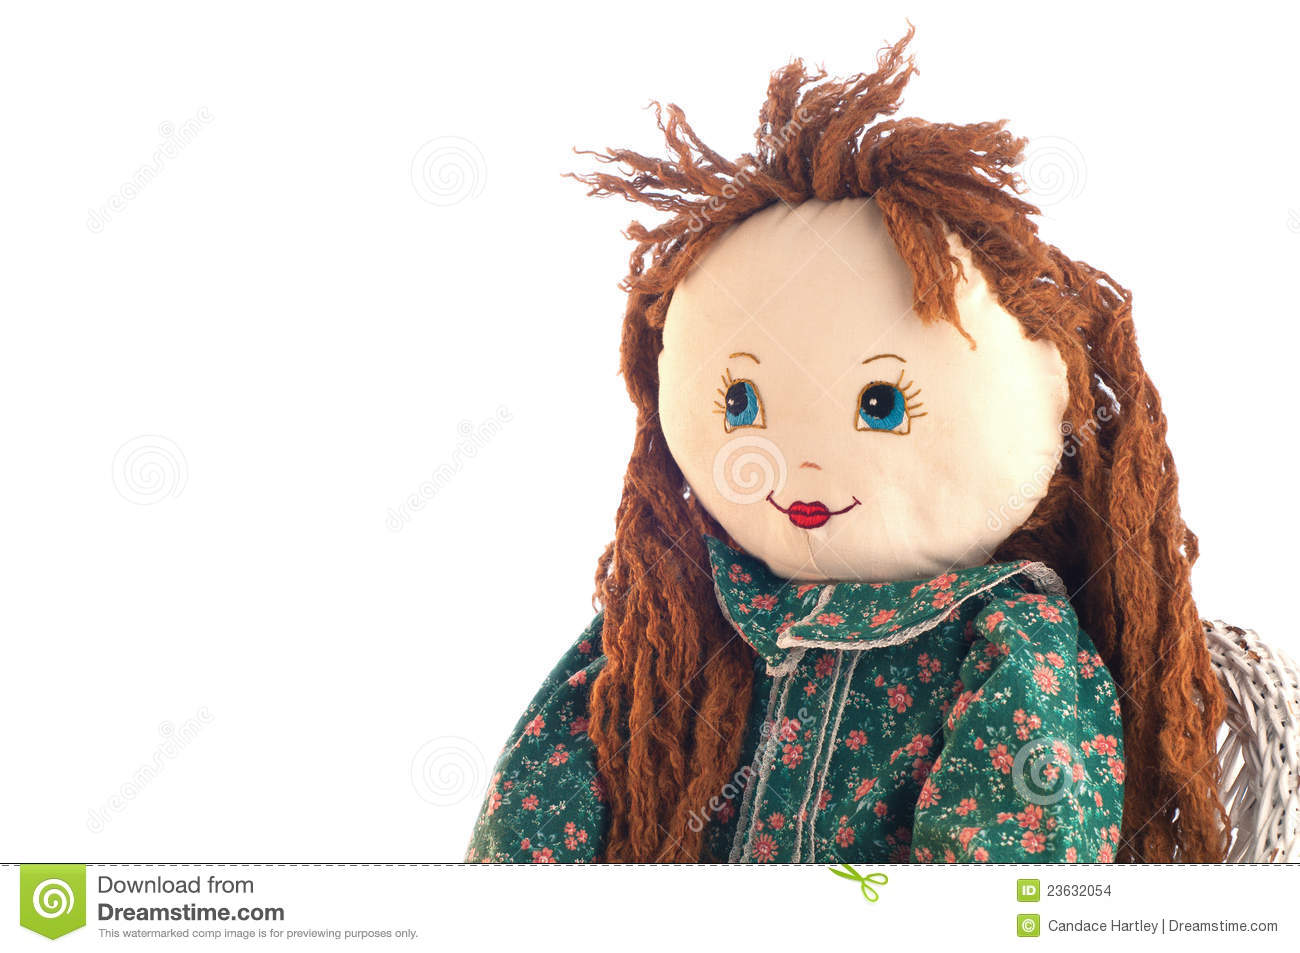 Cute Doll Looking into White Copy Space